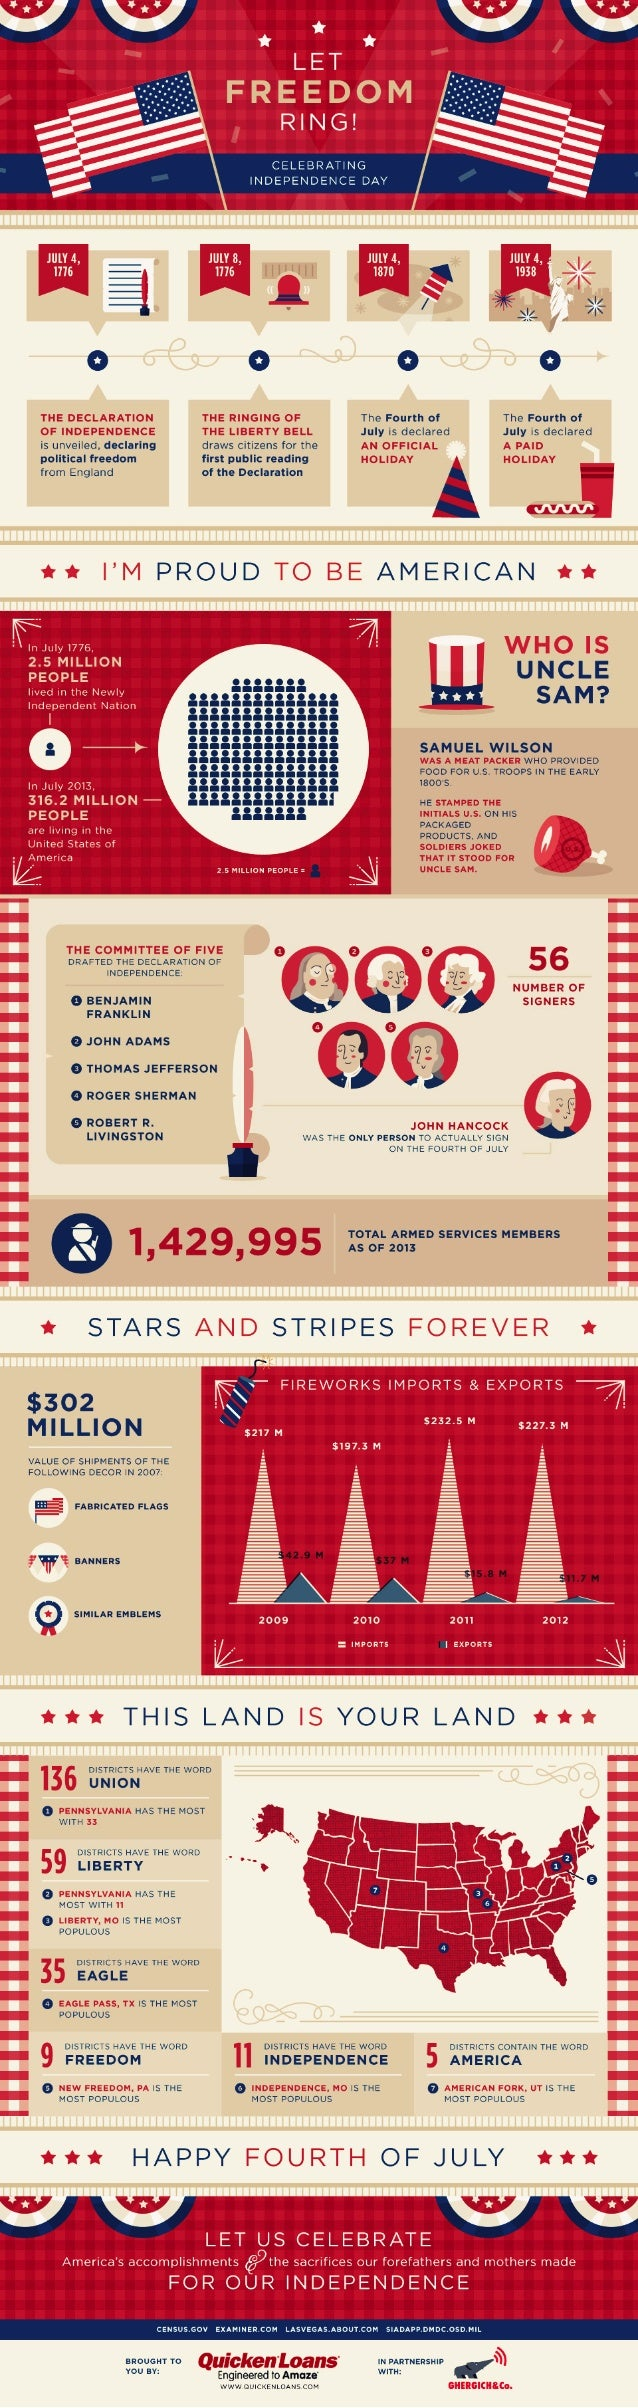 Quicken Loans Zing Blog Let Freedom Ring Infographic